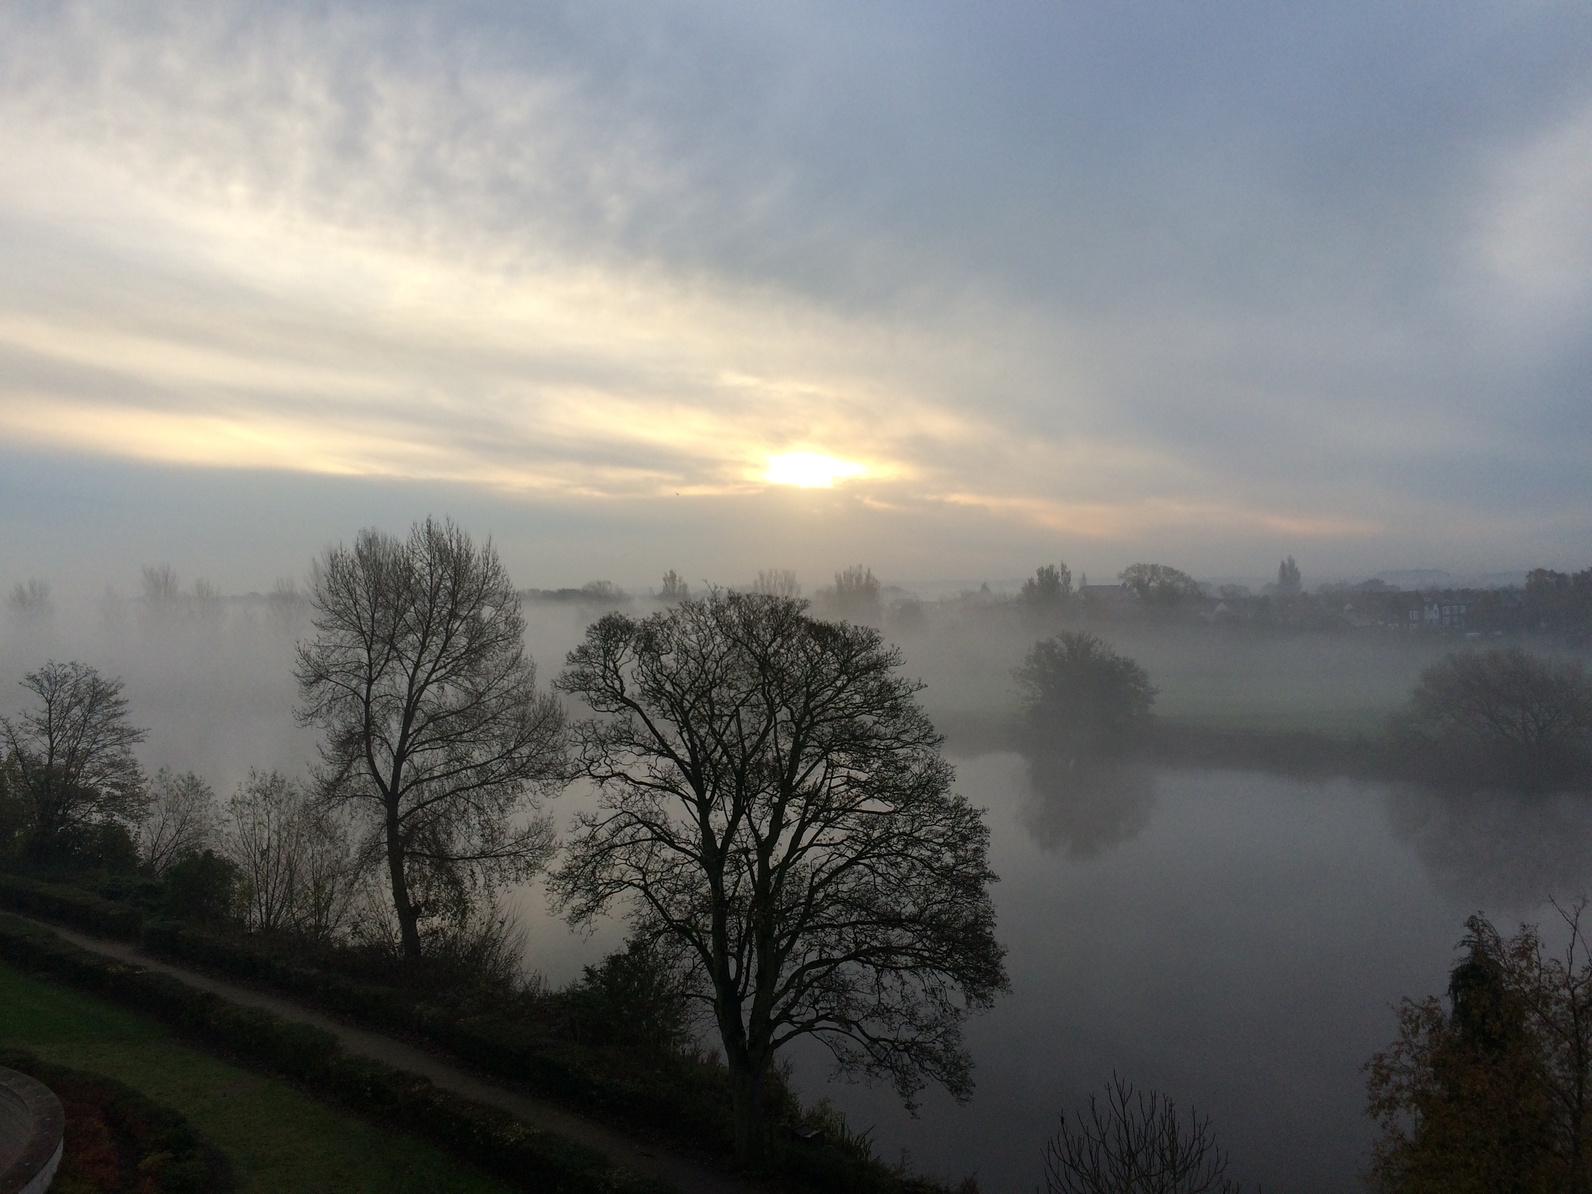 Sunrise through a foggy start of the day over the river Trent